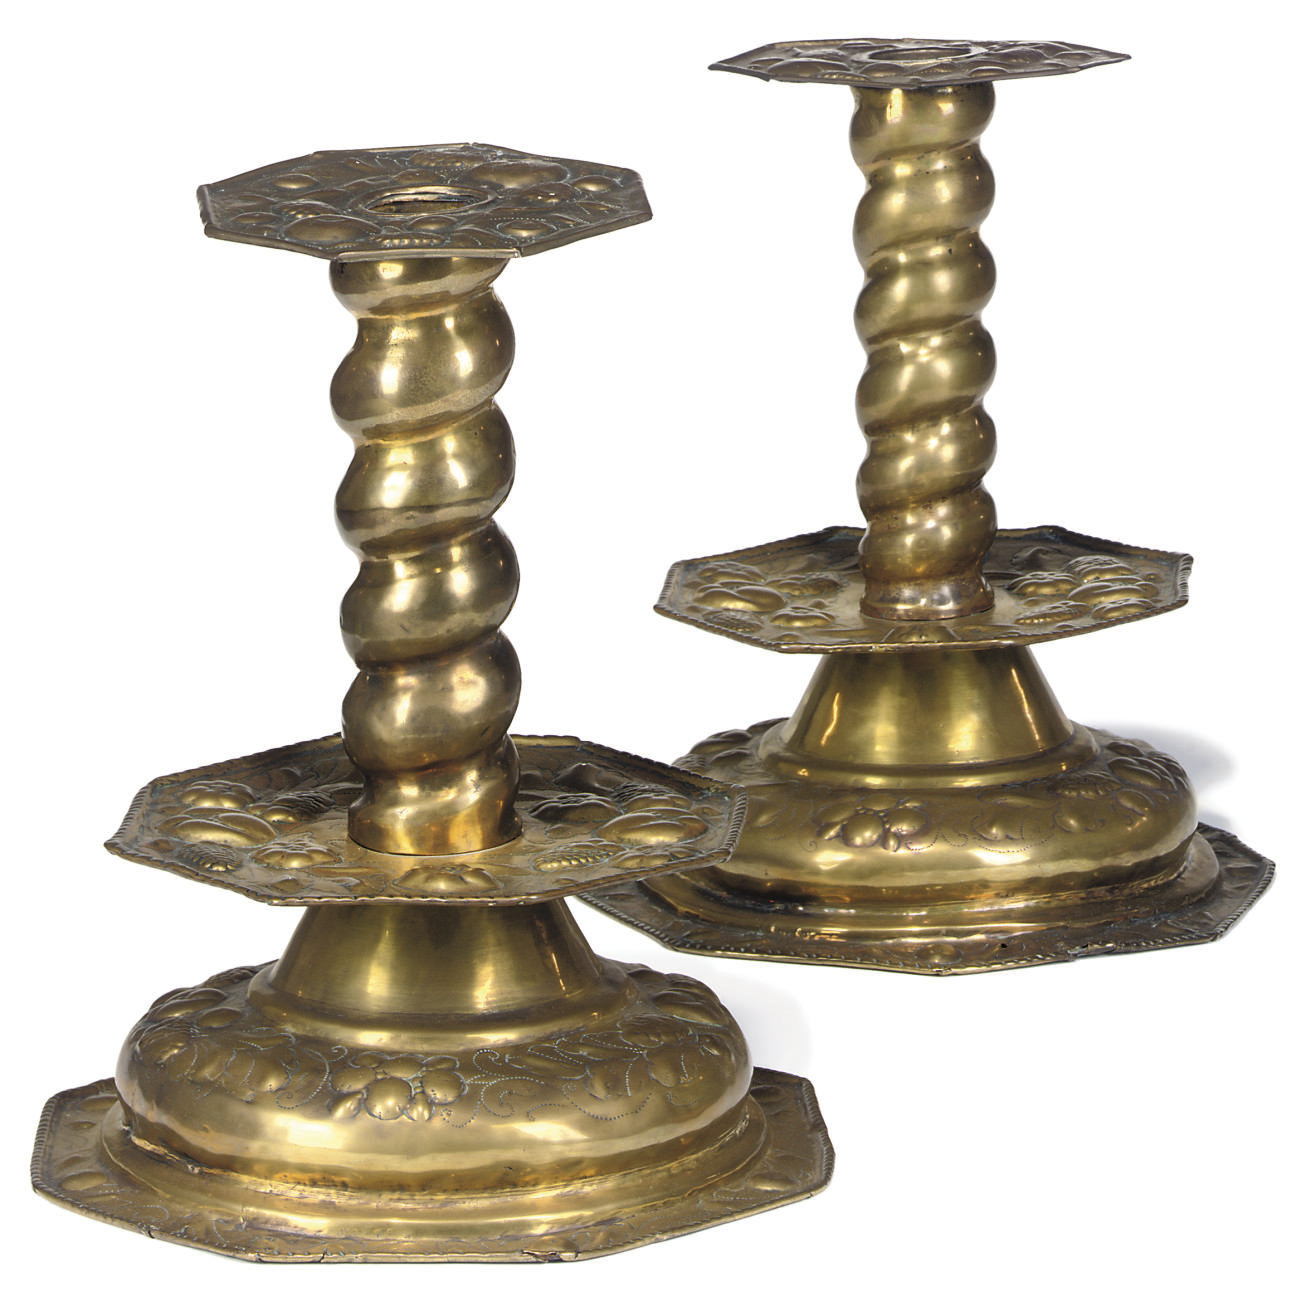 A PAIR OF SWEDISH BRASS CANDLE